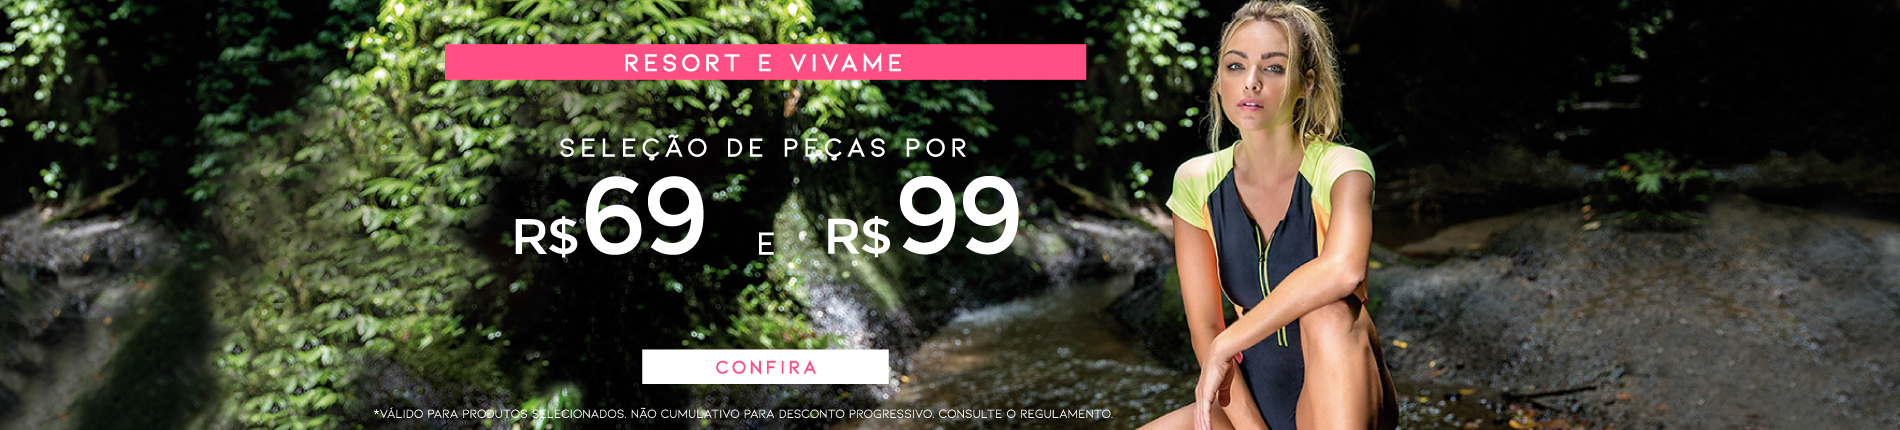 SALE Resort Vivame 99,00